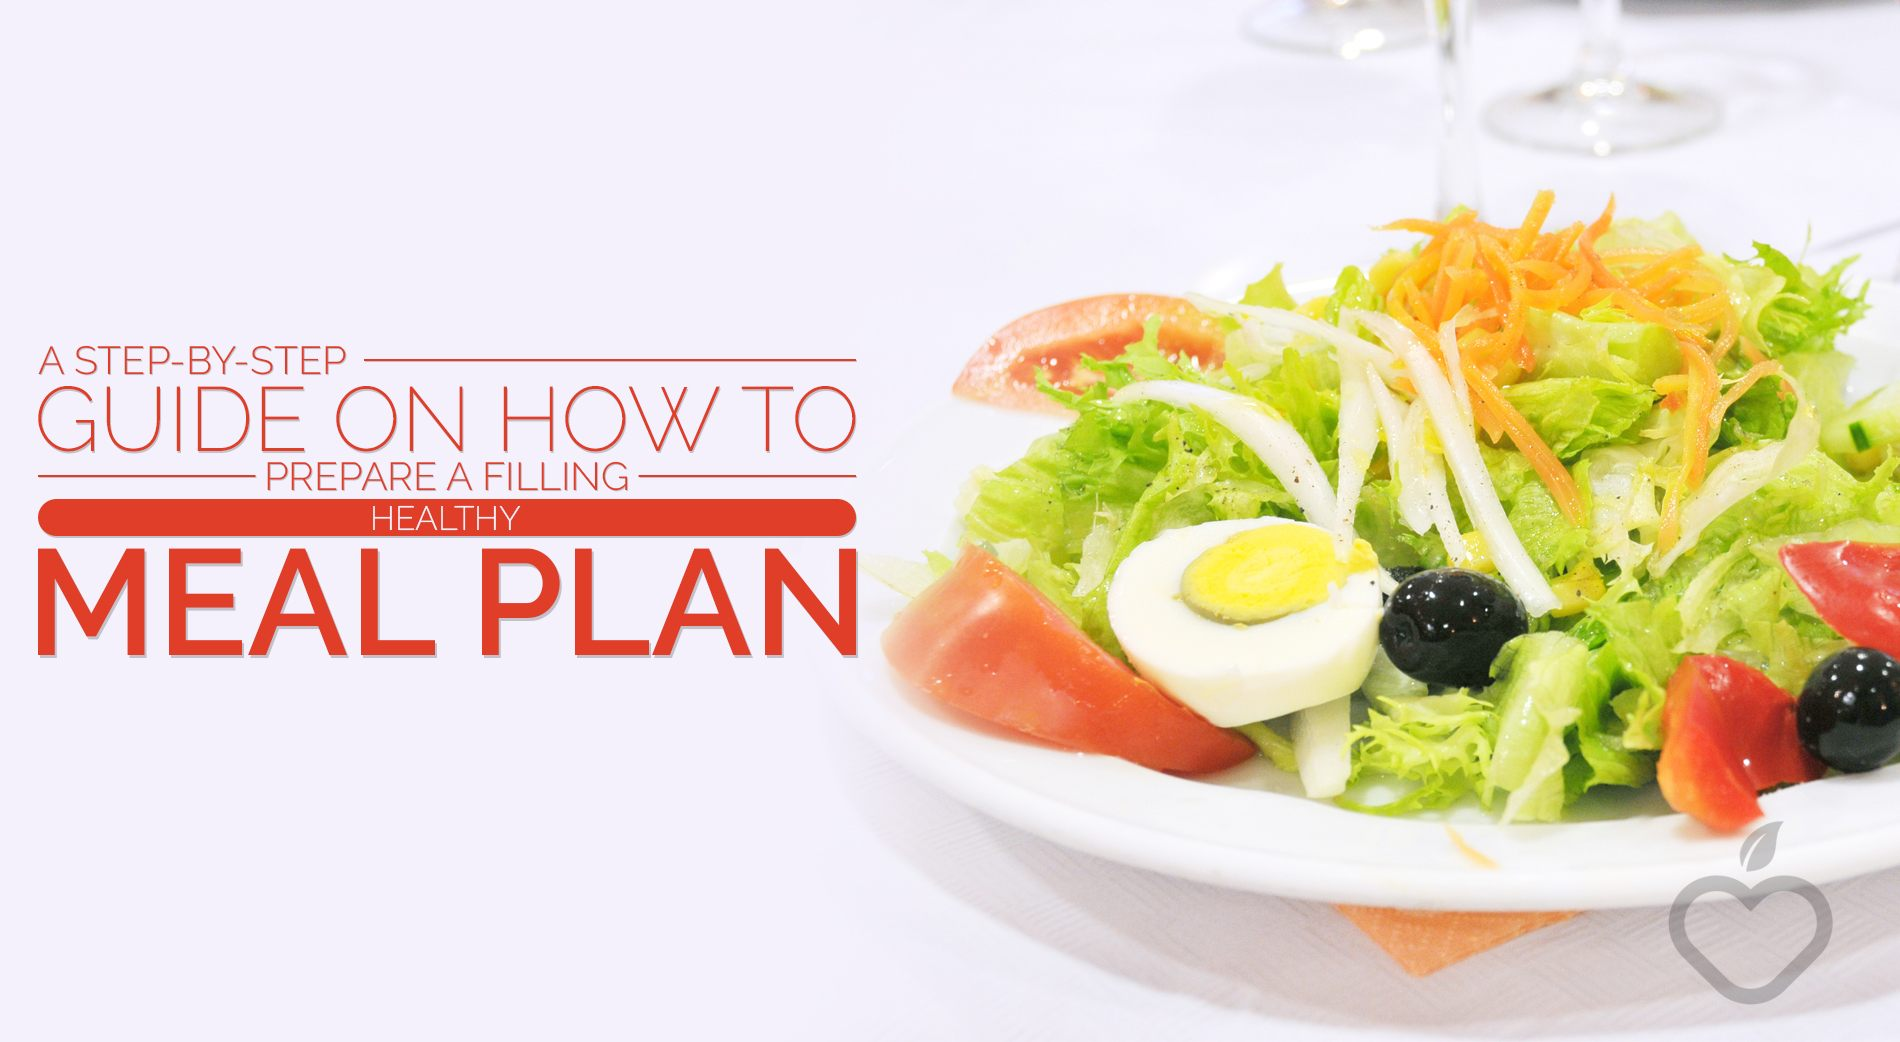 Meal Plan Image Design 1 - A Step-By-Step Guide On How To Prepare A Filling Healthy Meal Plan